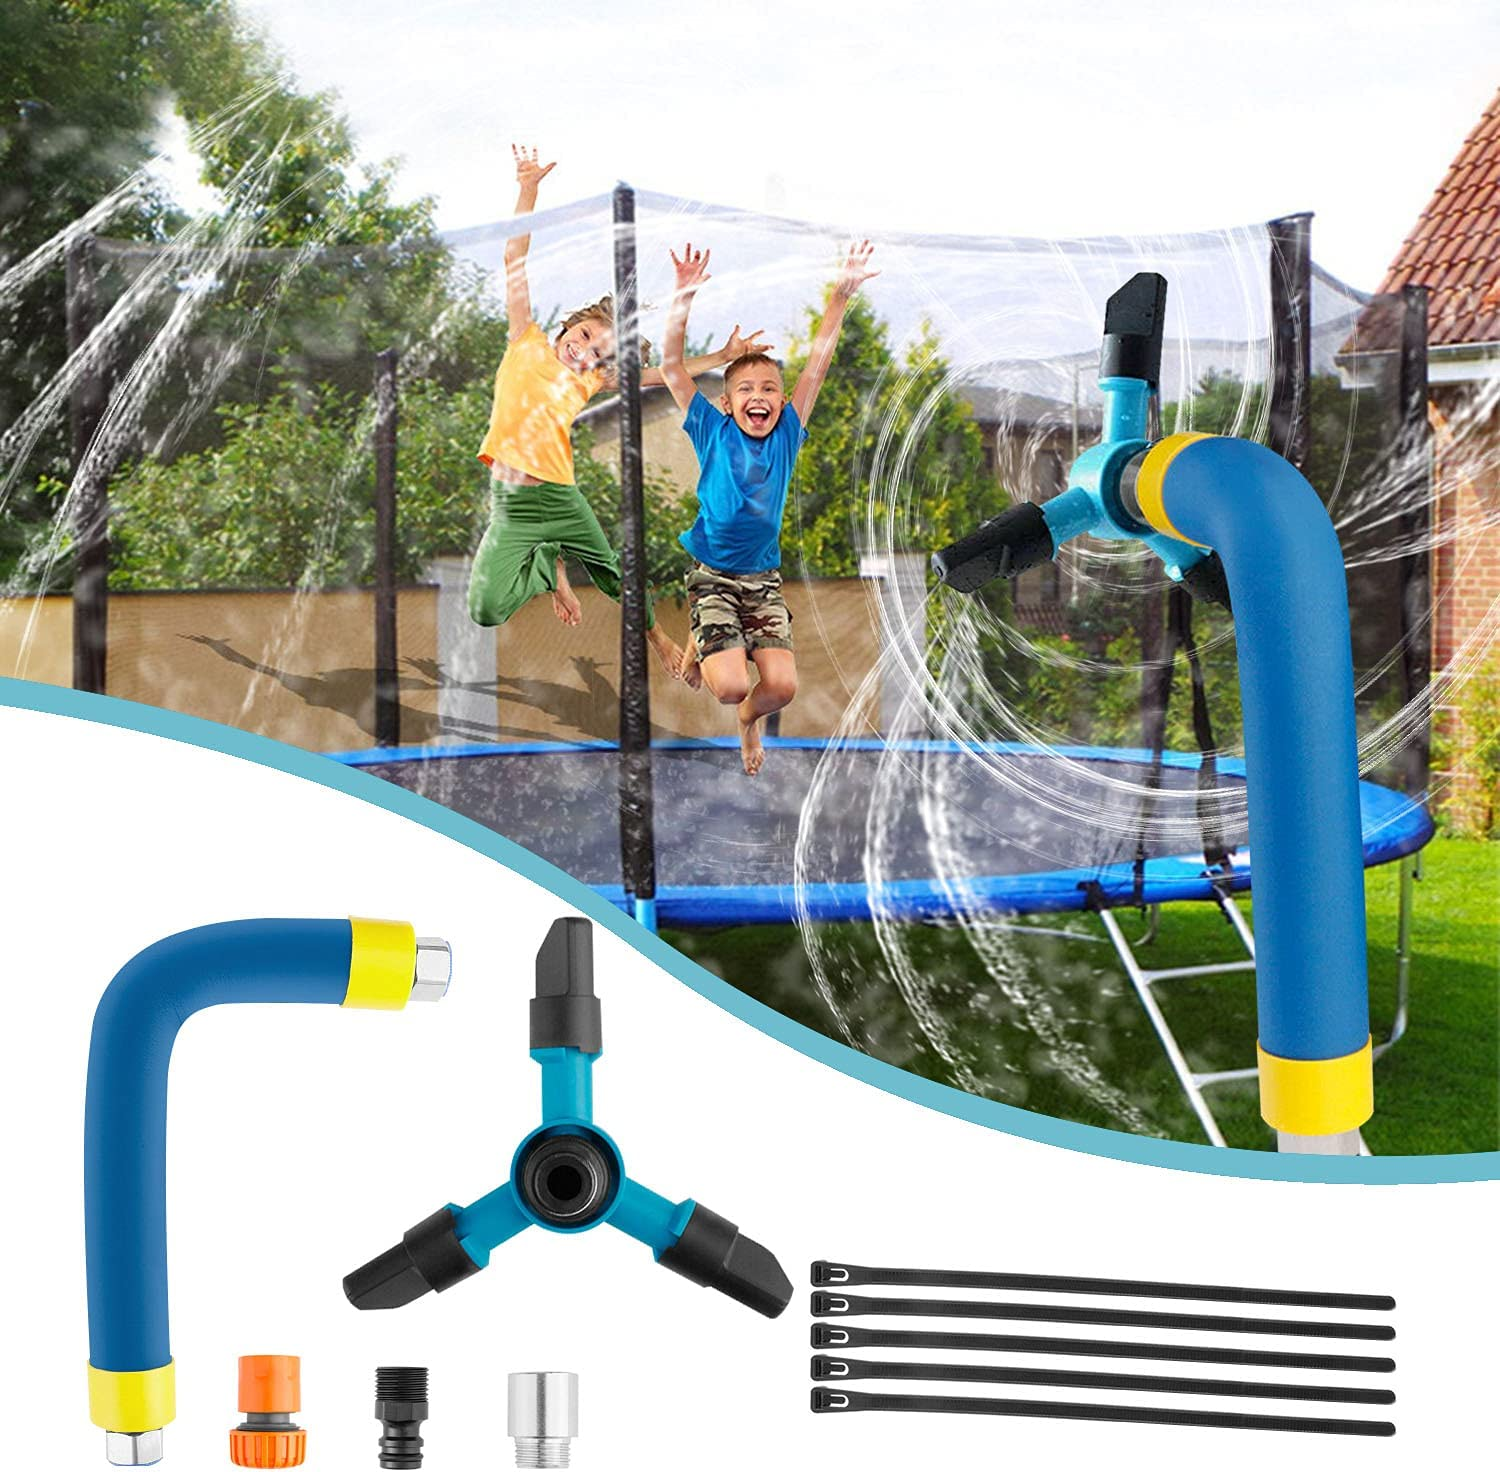 Hezruy Trampoline Sprinkler for Kids,360/°Rotation Outdoor Water Play Sprinkler for Trampoline,Fun Summer Trampoline Accessories Backyard Water Game Toys for Boys and Girls